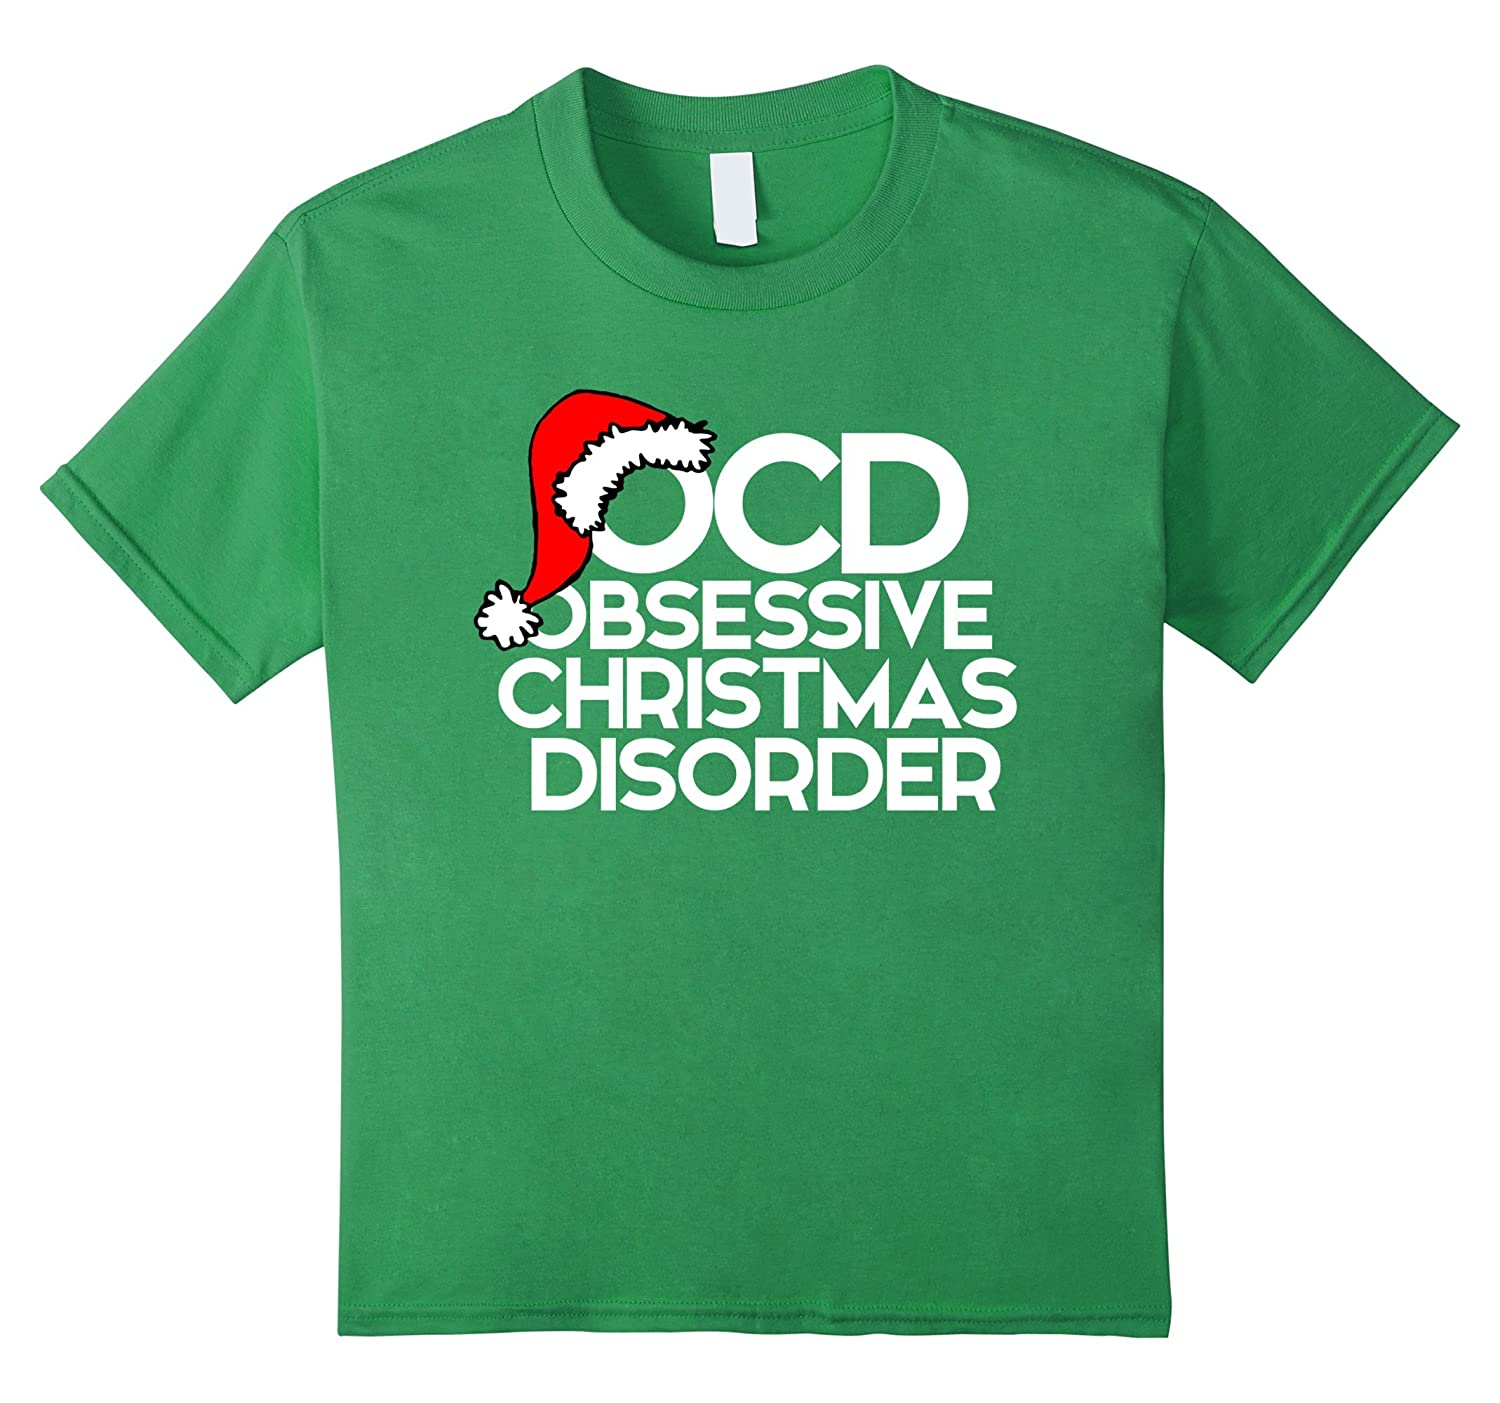 Amazon.com: OCD Obsessive Christmas Disorder shirt for xmas party ...